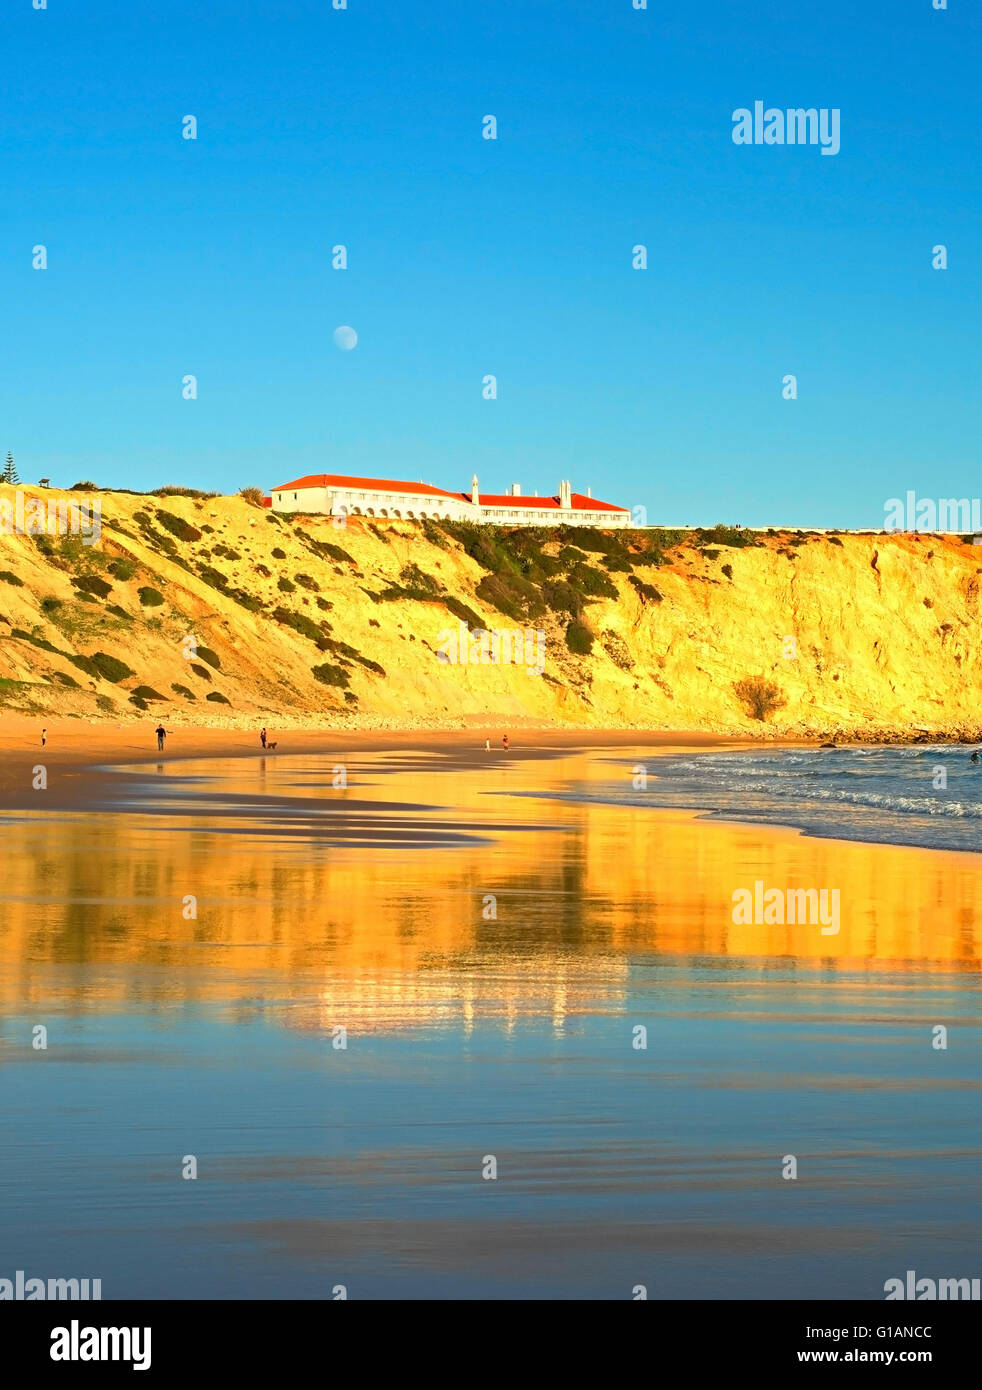 People on the ocean beach at sunset. Full moon in the sky.  Portugal - Stock Image